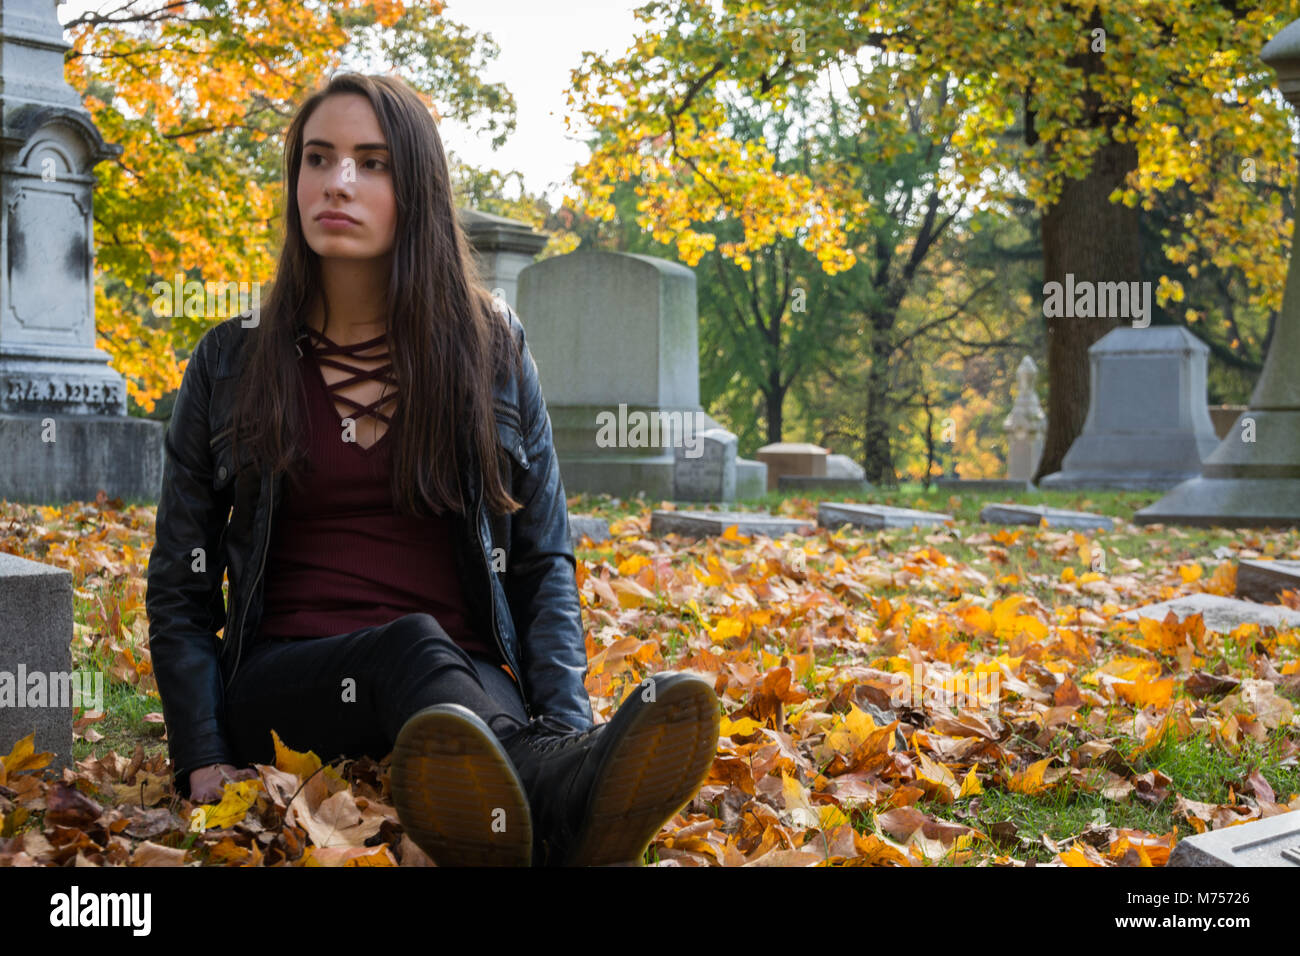 A Young Girl Quiet Reflection, Mourning, Remembering, Meaning of Life and Death, Autumn Season, Surrounded by Leaves, - Stock Image